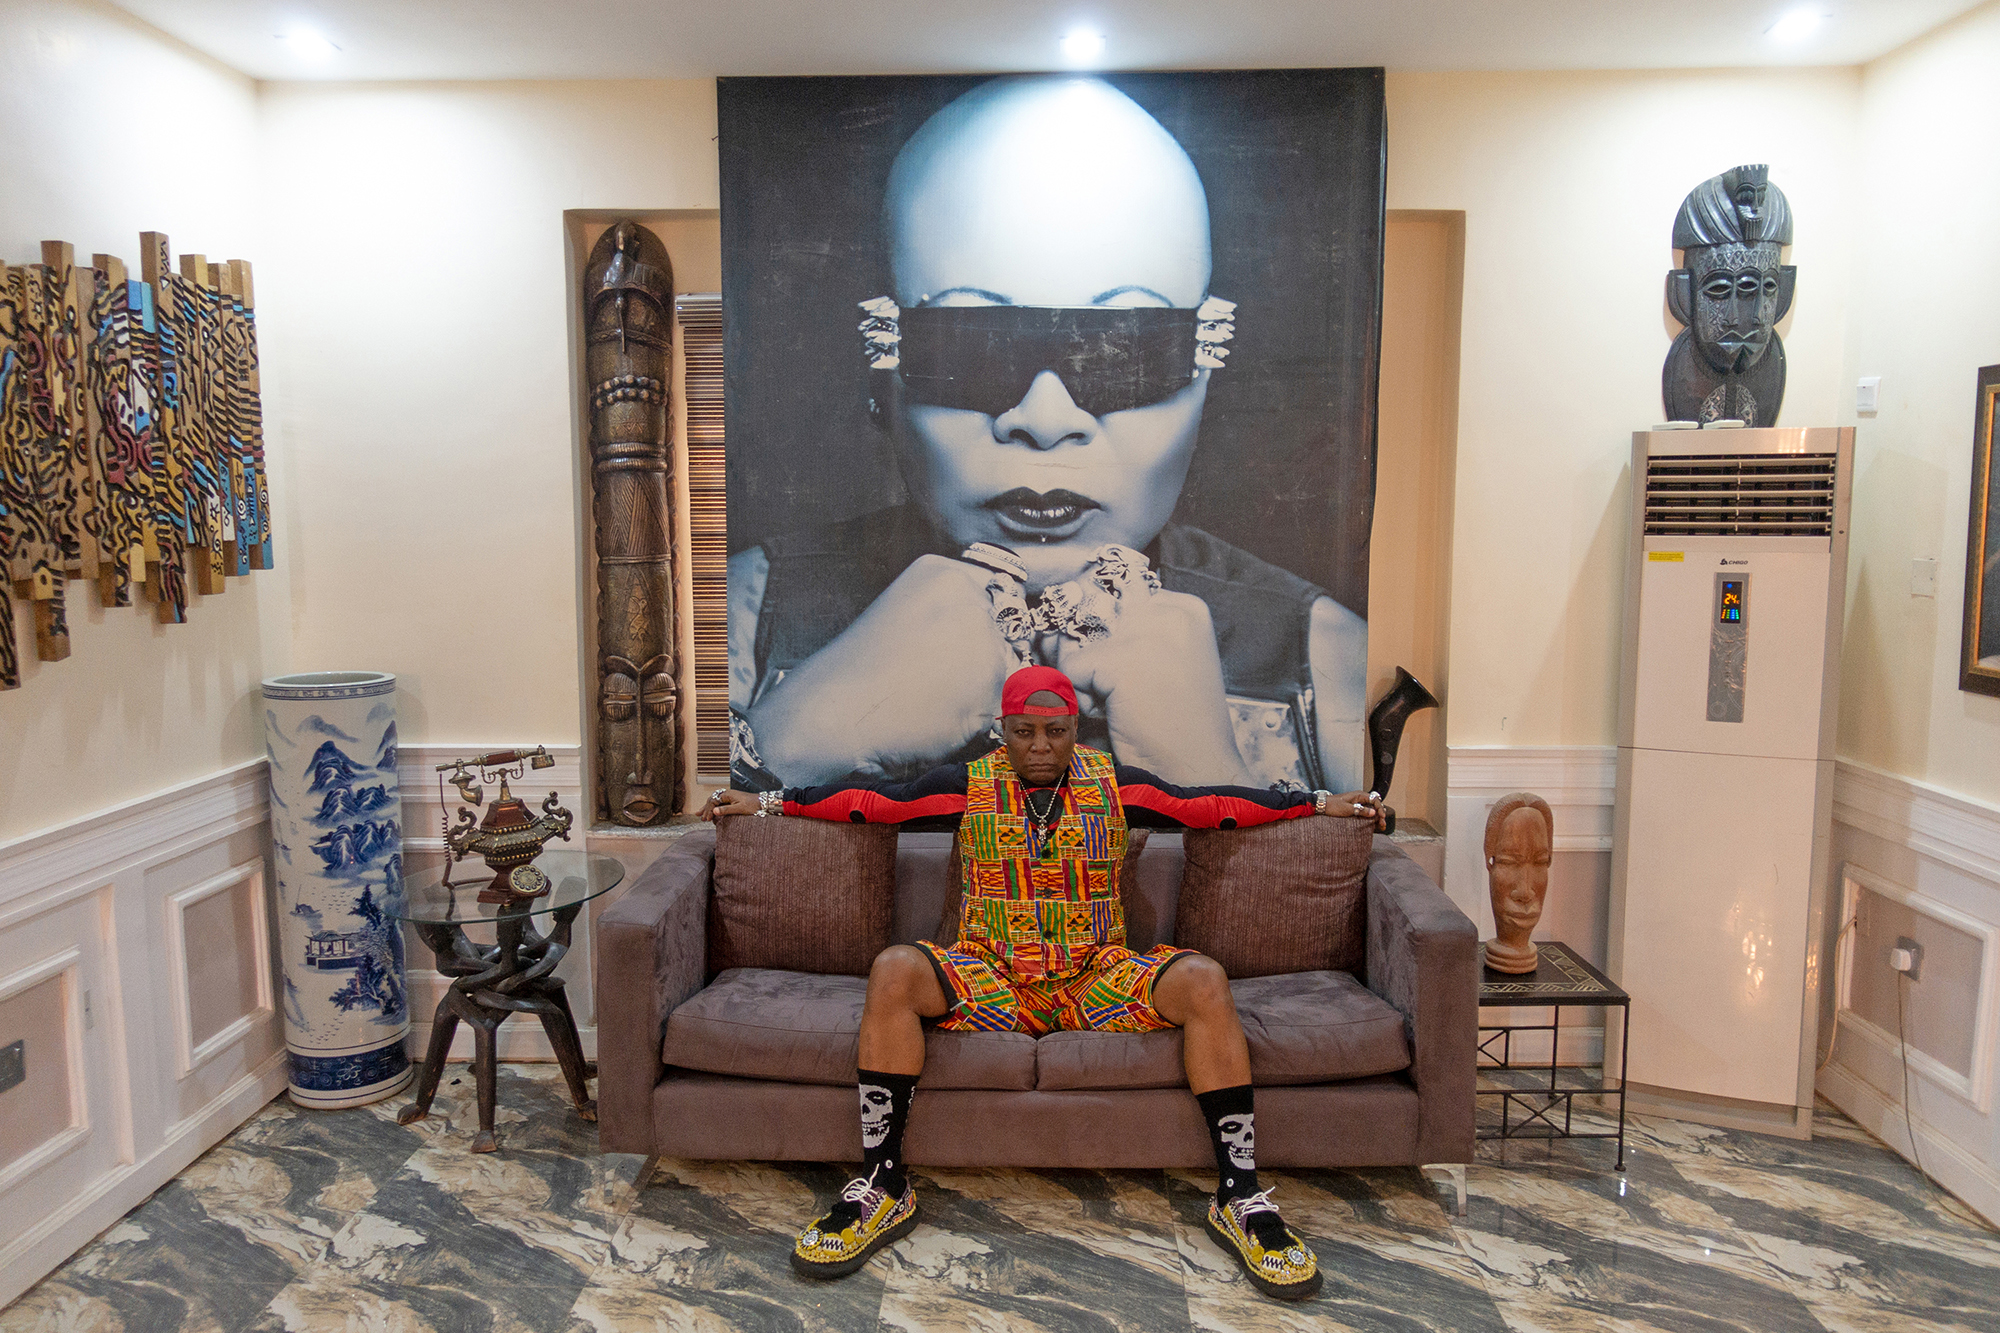 MULTI-LOCAL - Provocateur and pop star Charly Boy (née Charles Oputa) at his home in Abuja, Nigeria. Image by Stephen Tayo, Jan Hoek